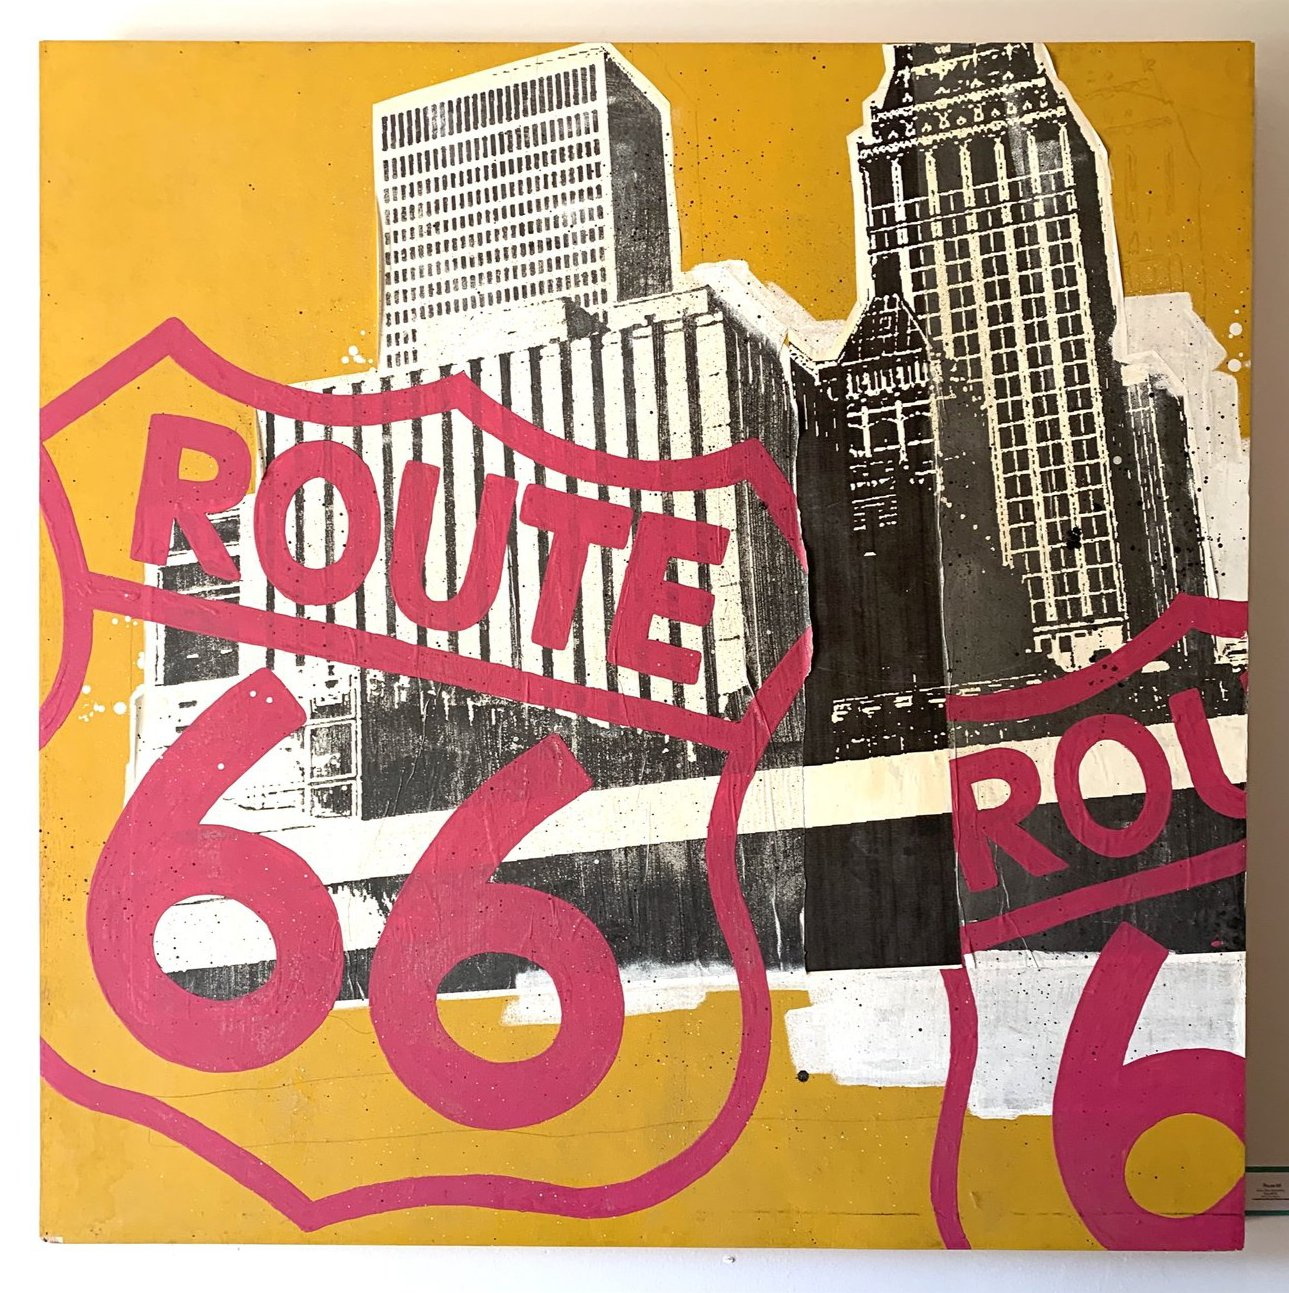 Route 66 by Clean Hands Army